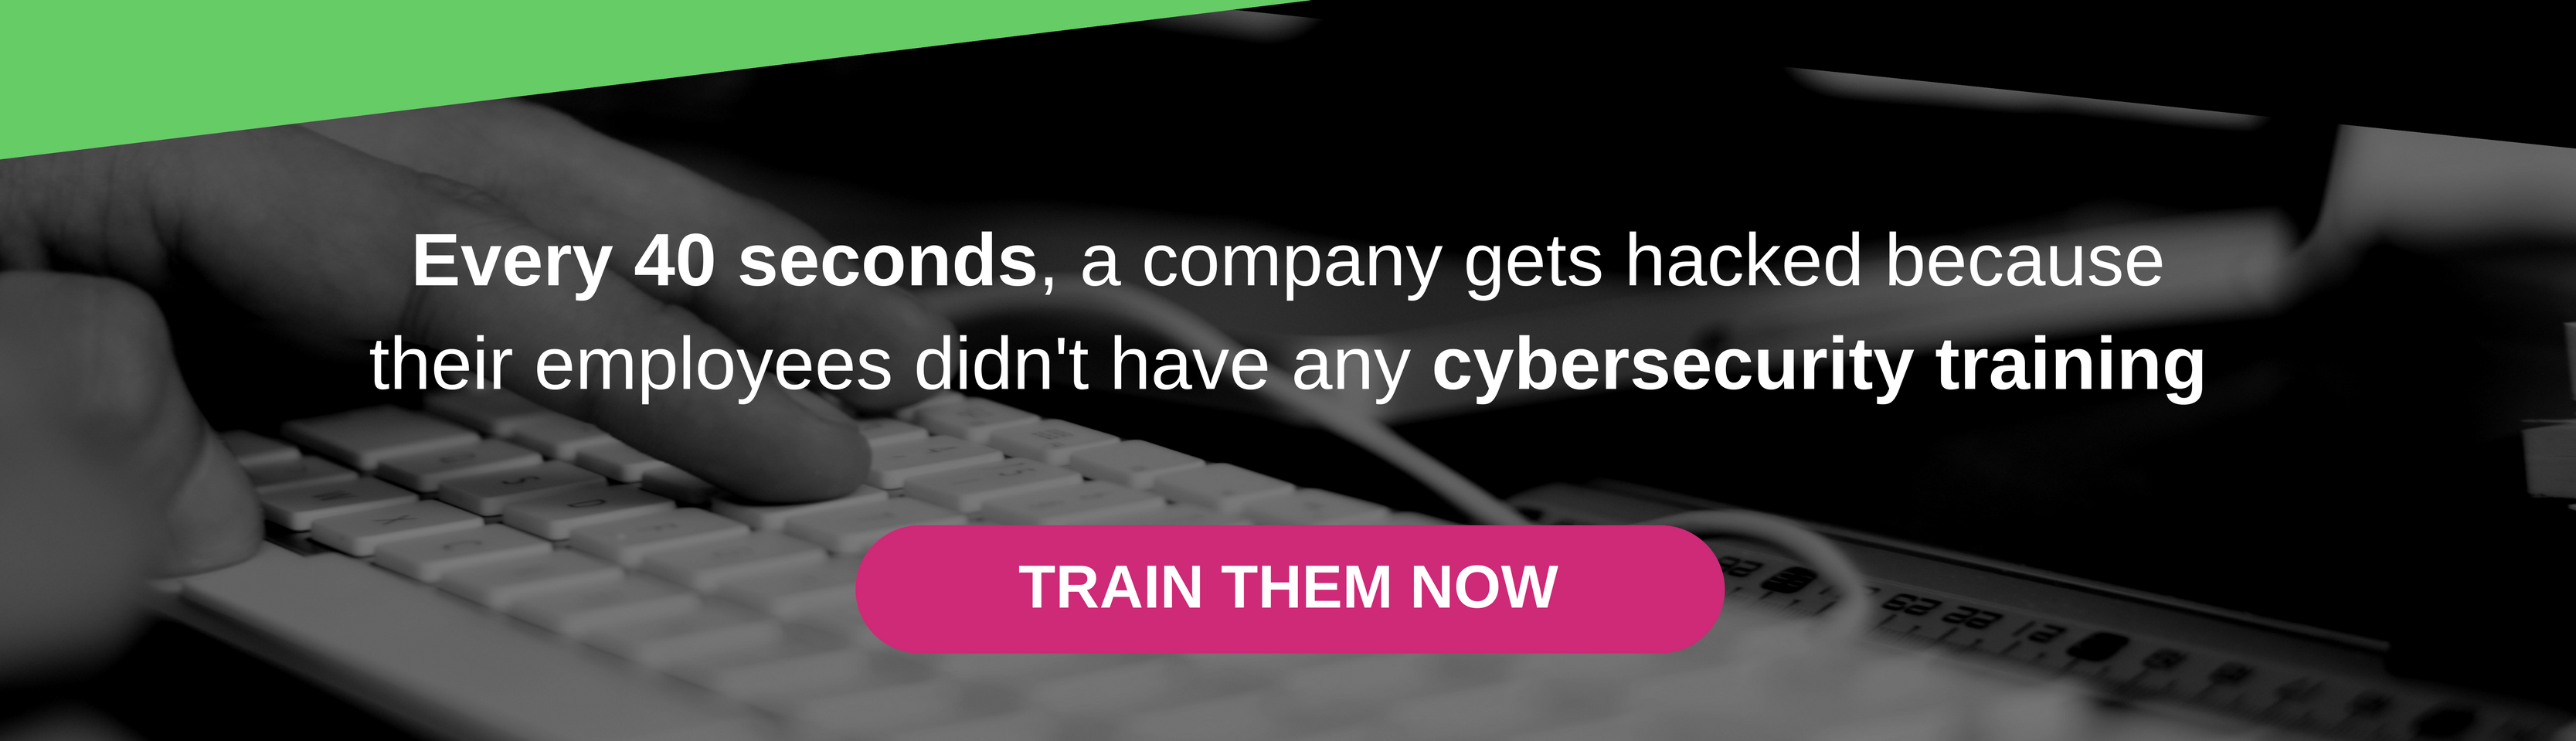 Every 40 seconds, a company gets hacked because their employees didn't have any cybersecurity training - Train them today